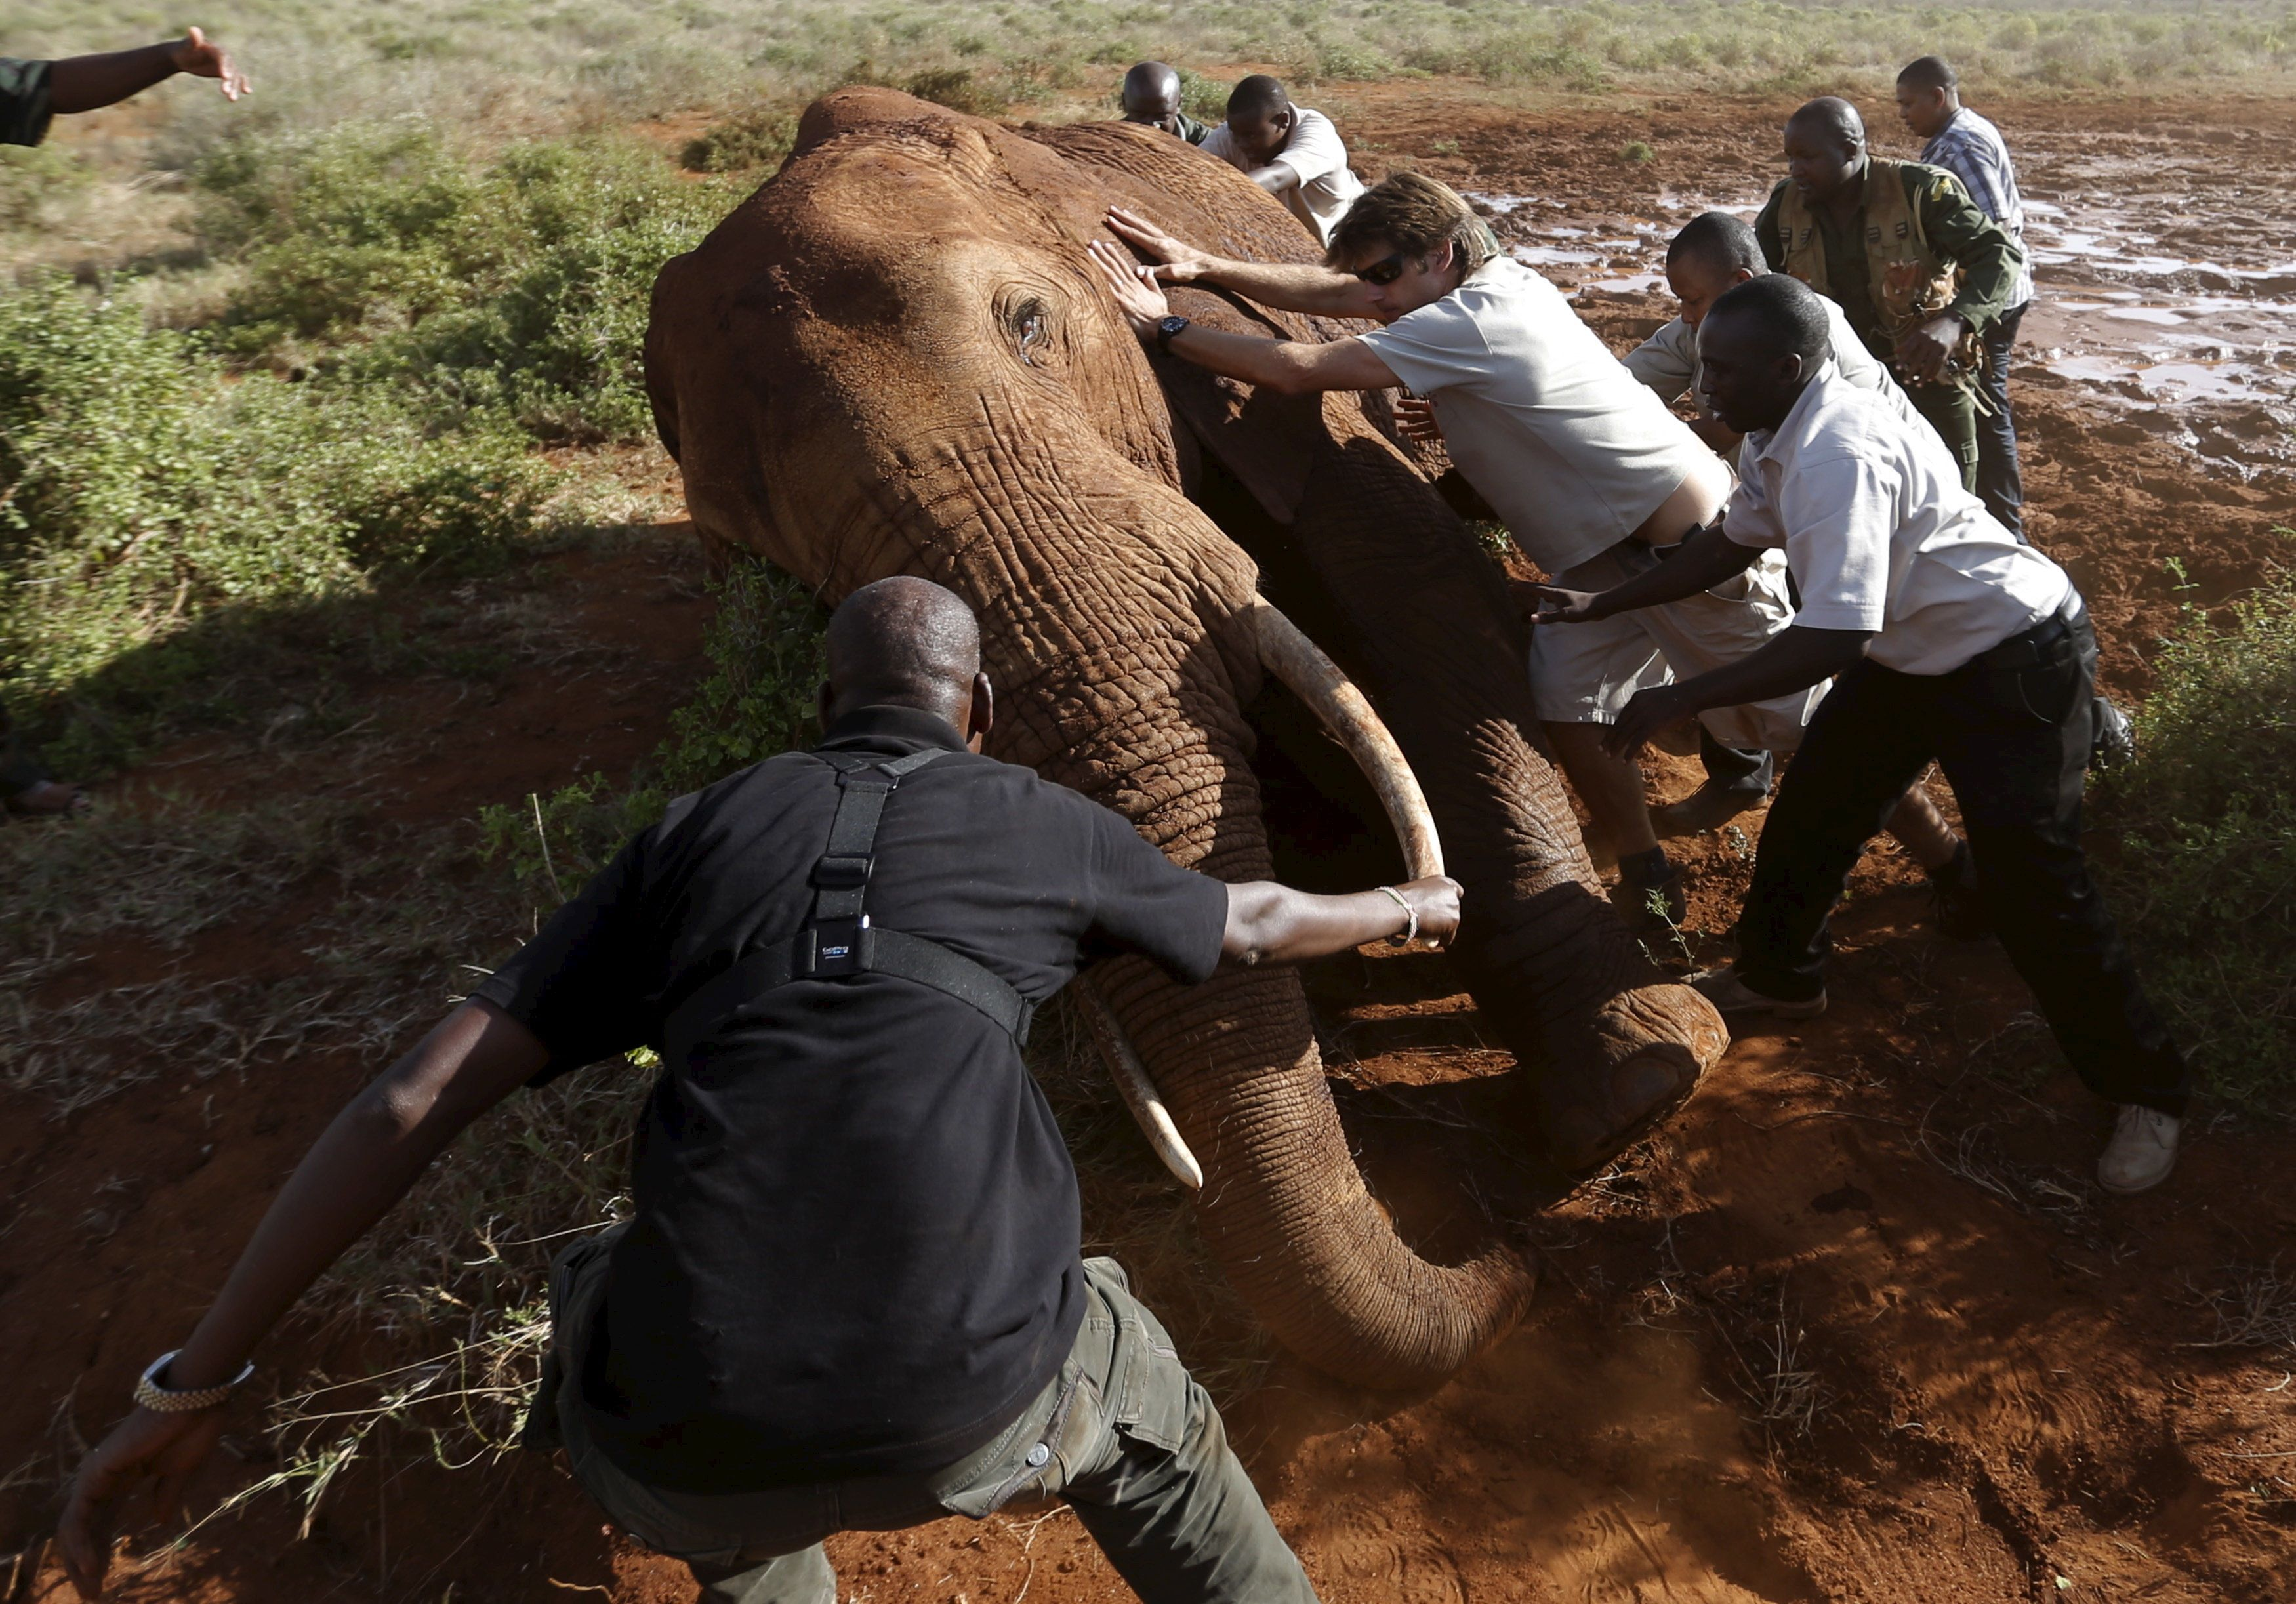 Kenya Wildlife Service and Save The Elephants staff attempt to collar anelephant in Tsavo National Park,near the